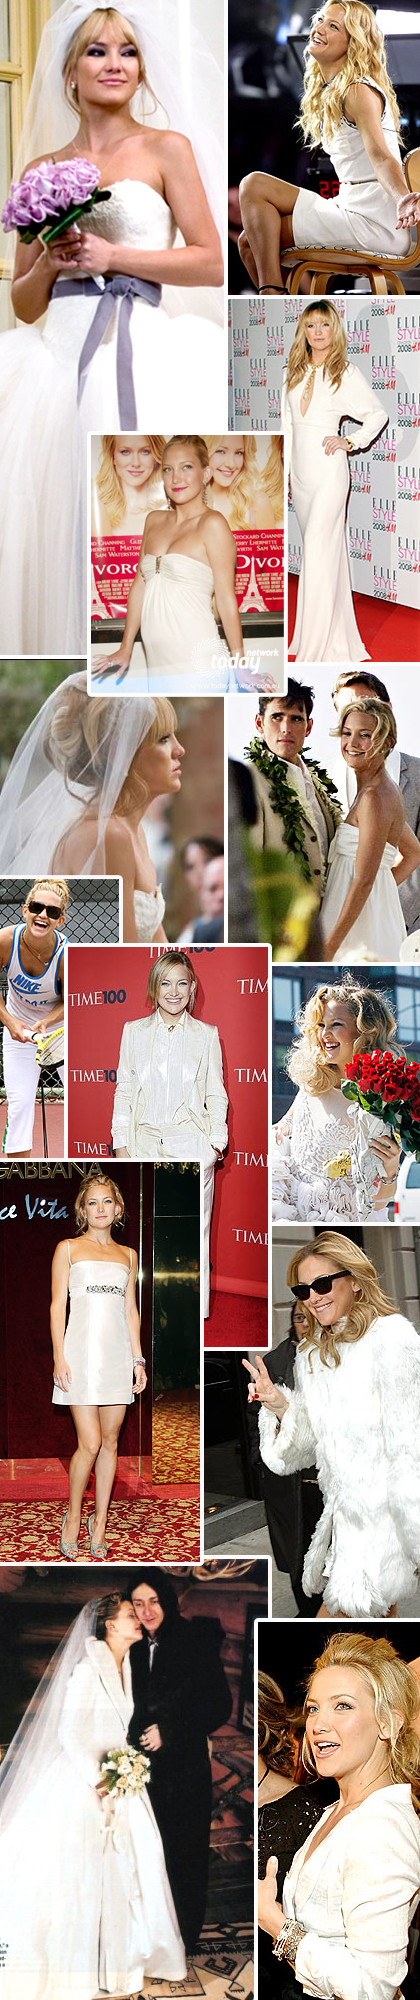 Kate-Hudson-Wedding-Bride